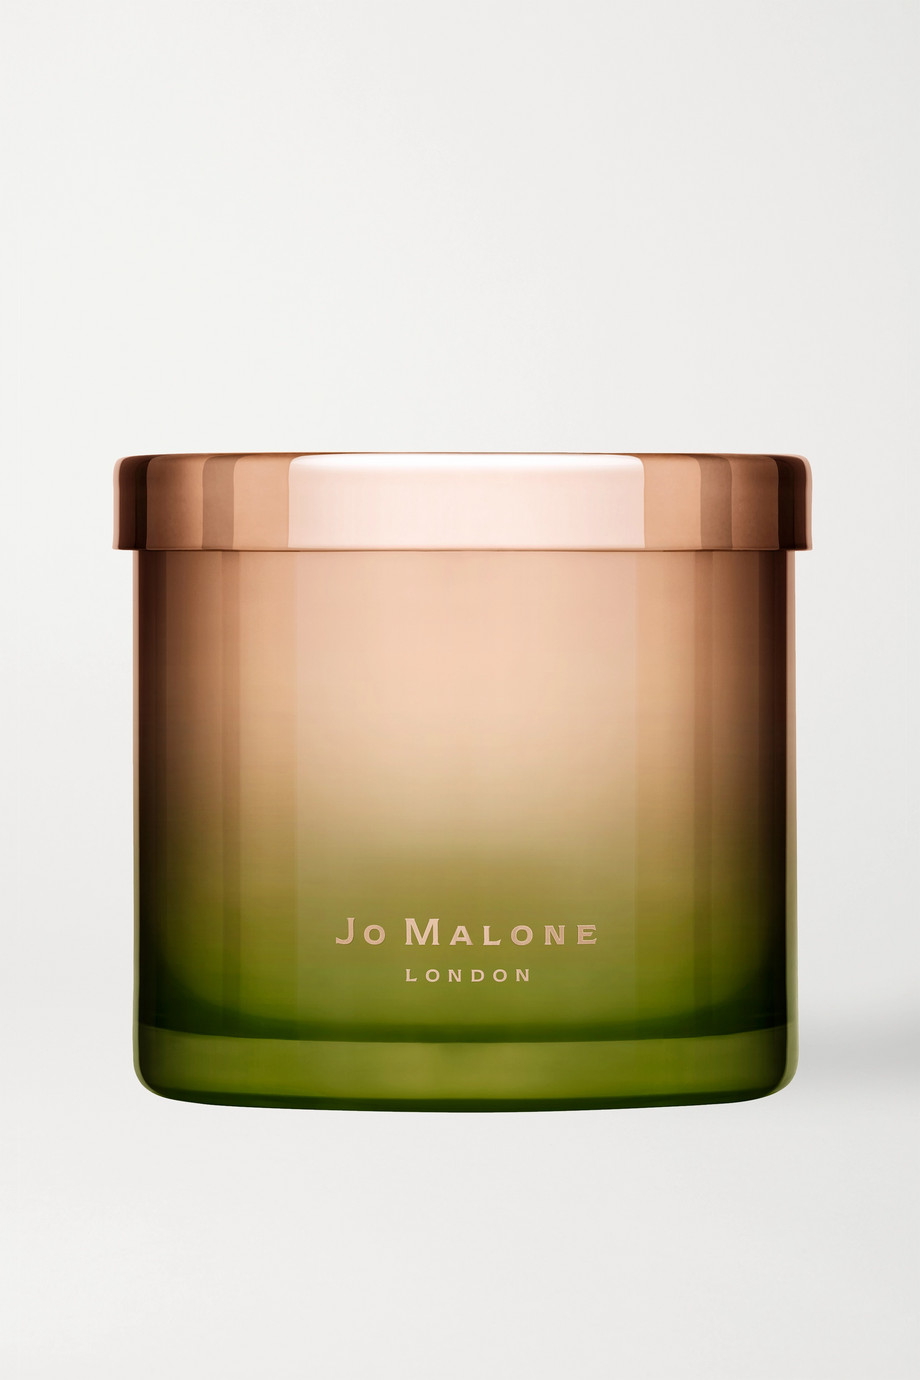 JO MALONE LONDON English Pear & Freesia and Lime Basil & Mandarin scented candle, 600g